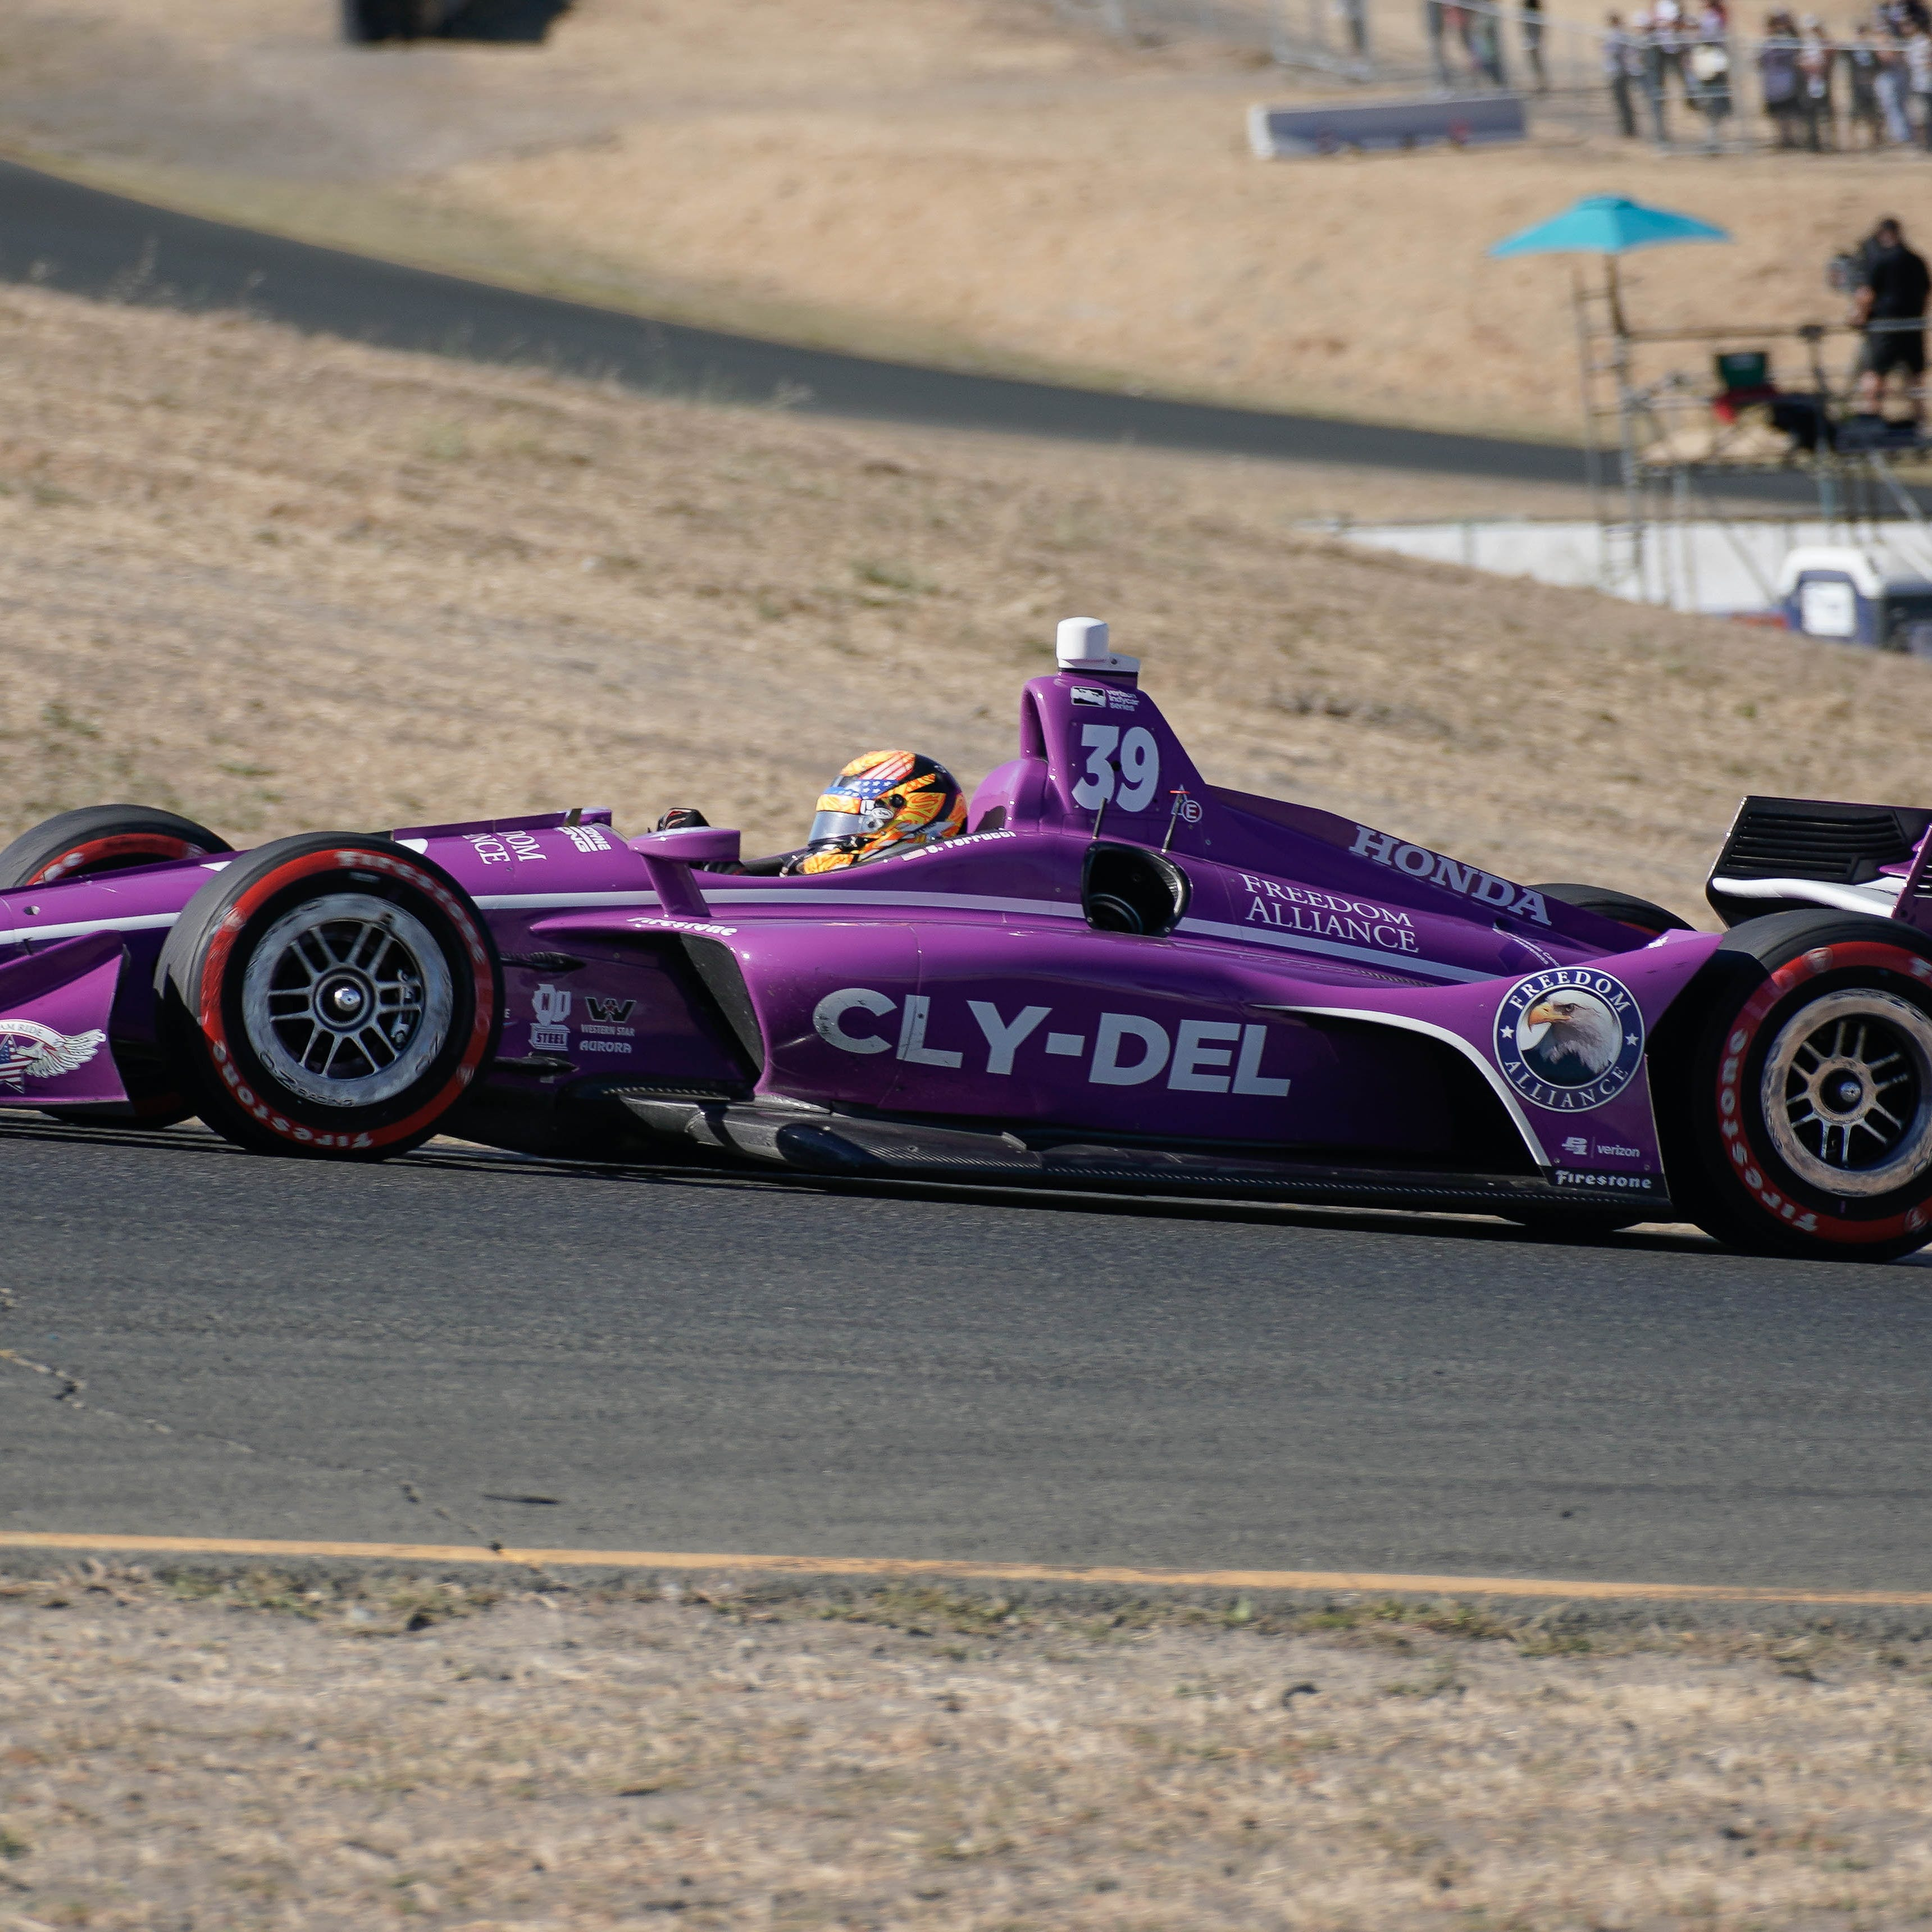 Sep 16, 2018; Sonoma, CA, USA;  Indycar driver Santino Ferrucci (39) during the Grand Prix of Sonoma at Sonoma Raceway.